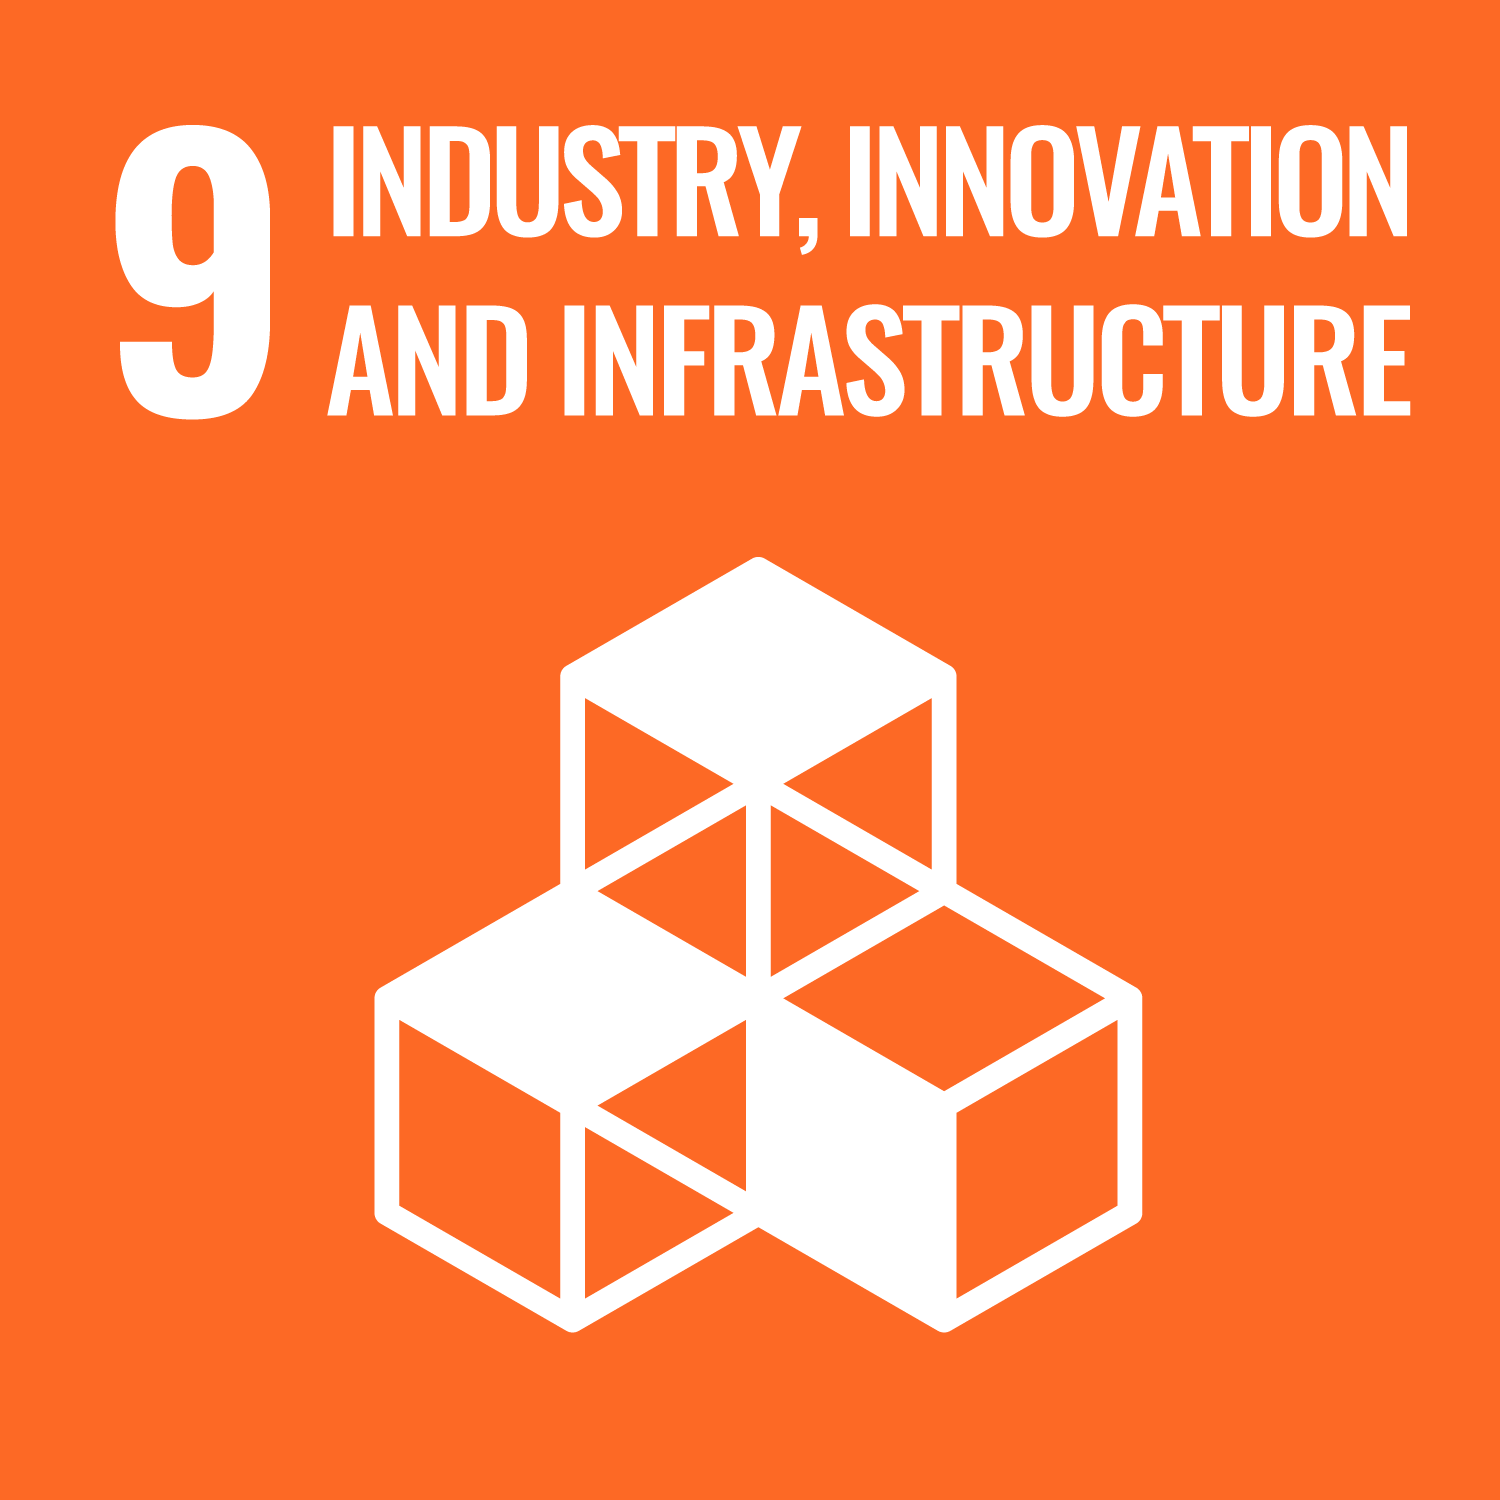 UN Sustainable goal - Industry, Innovation and Infrastructure